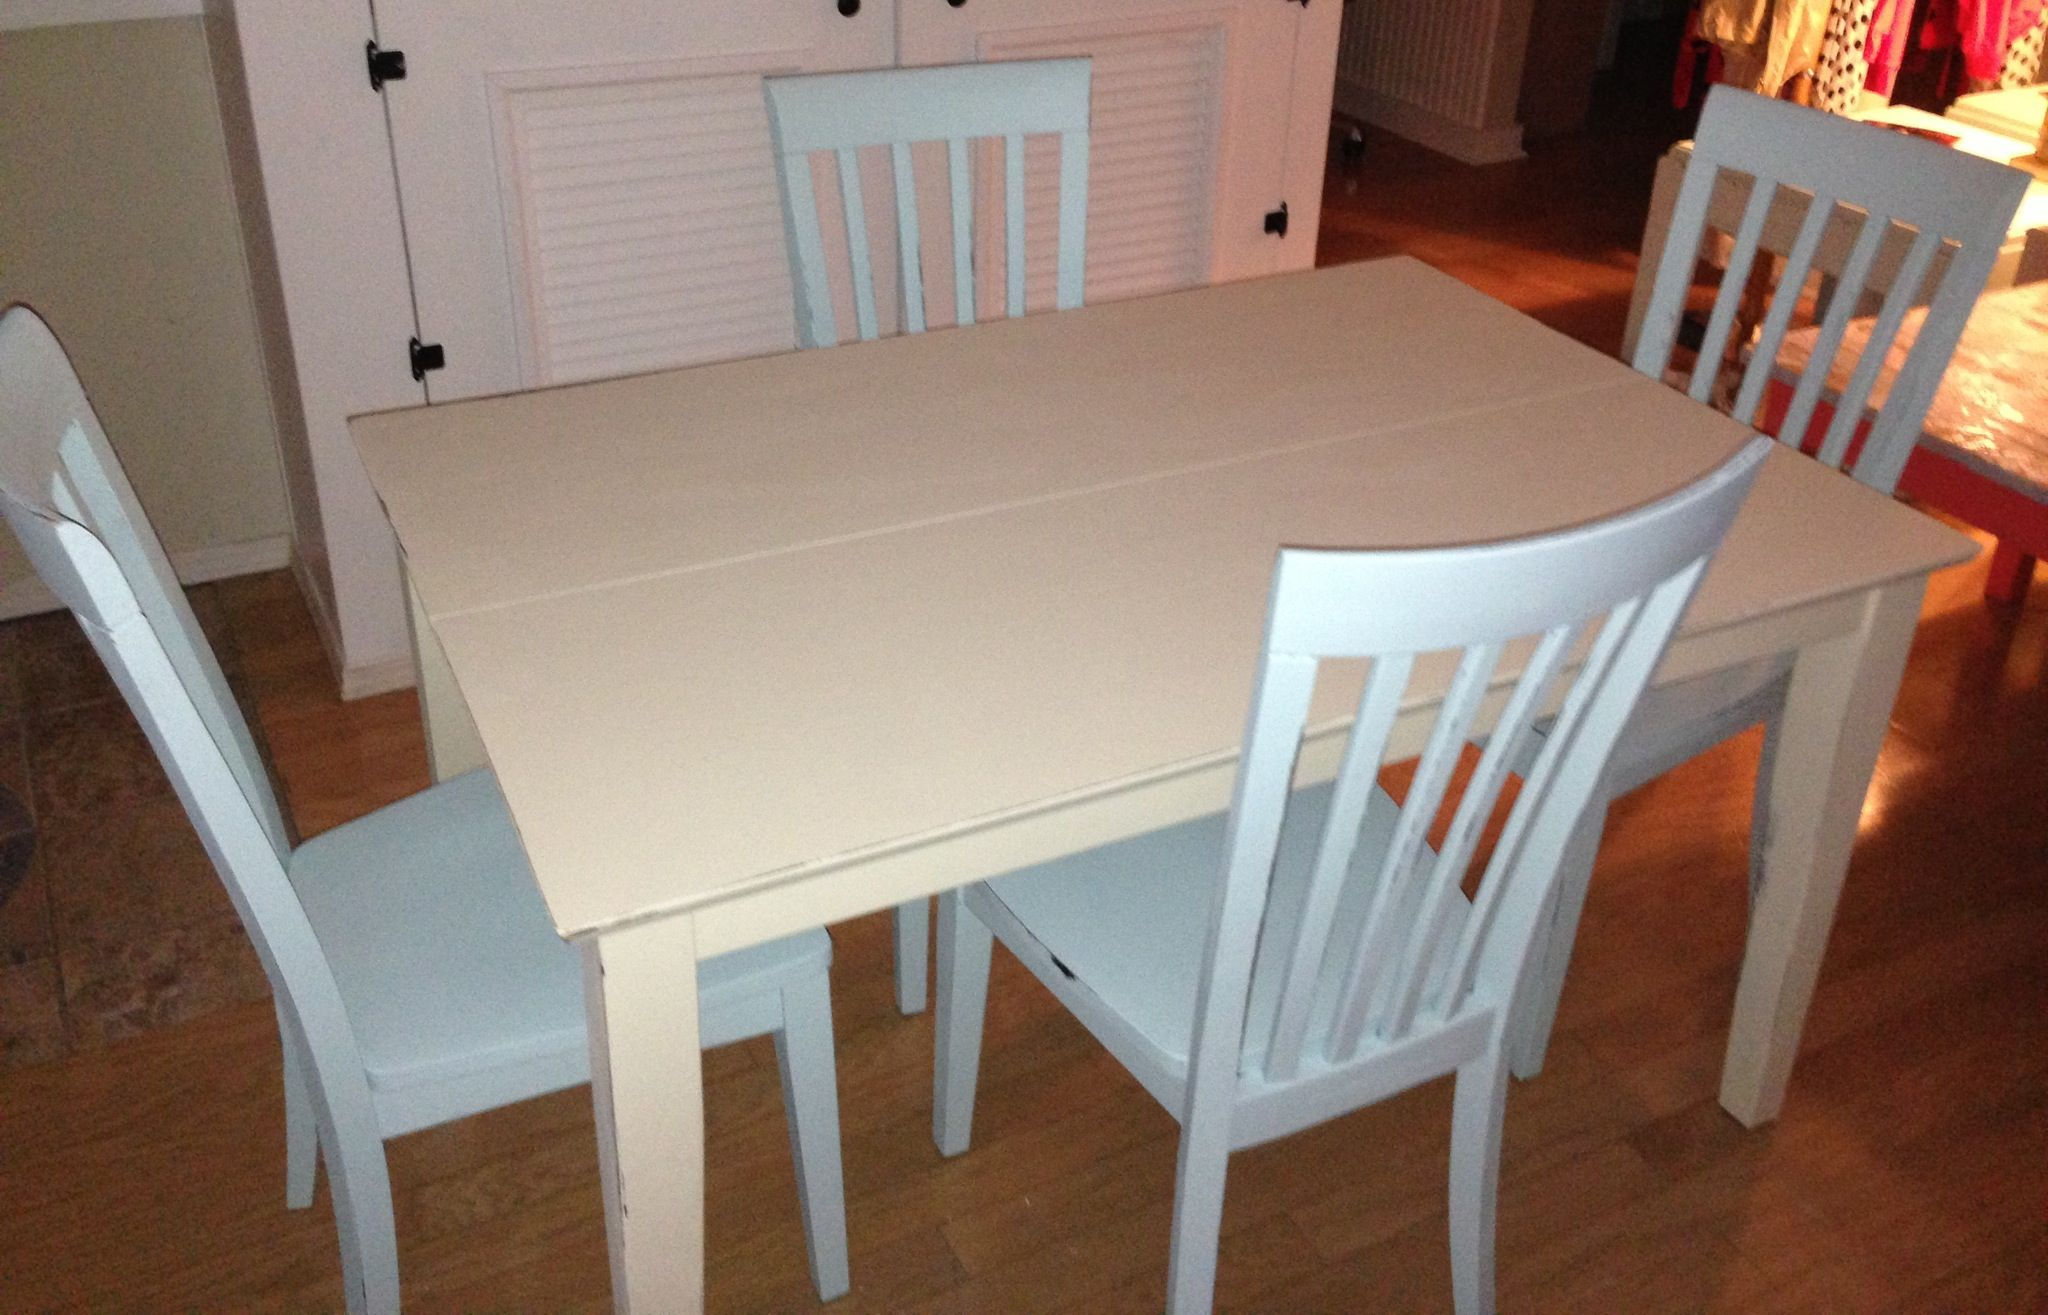 Bone white dining table with turquoise chairs. Looks cream in the photo, but it isn't.